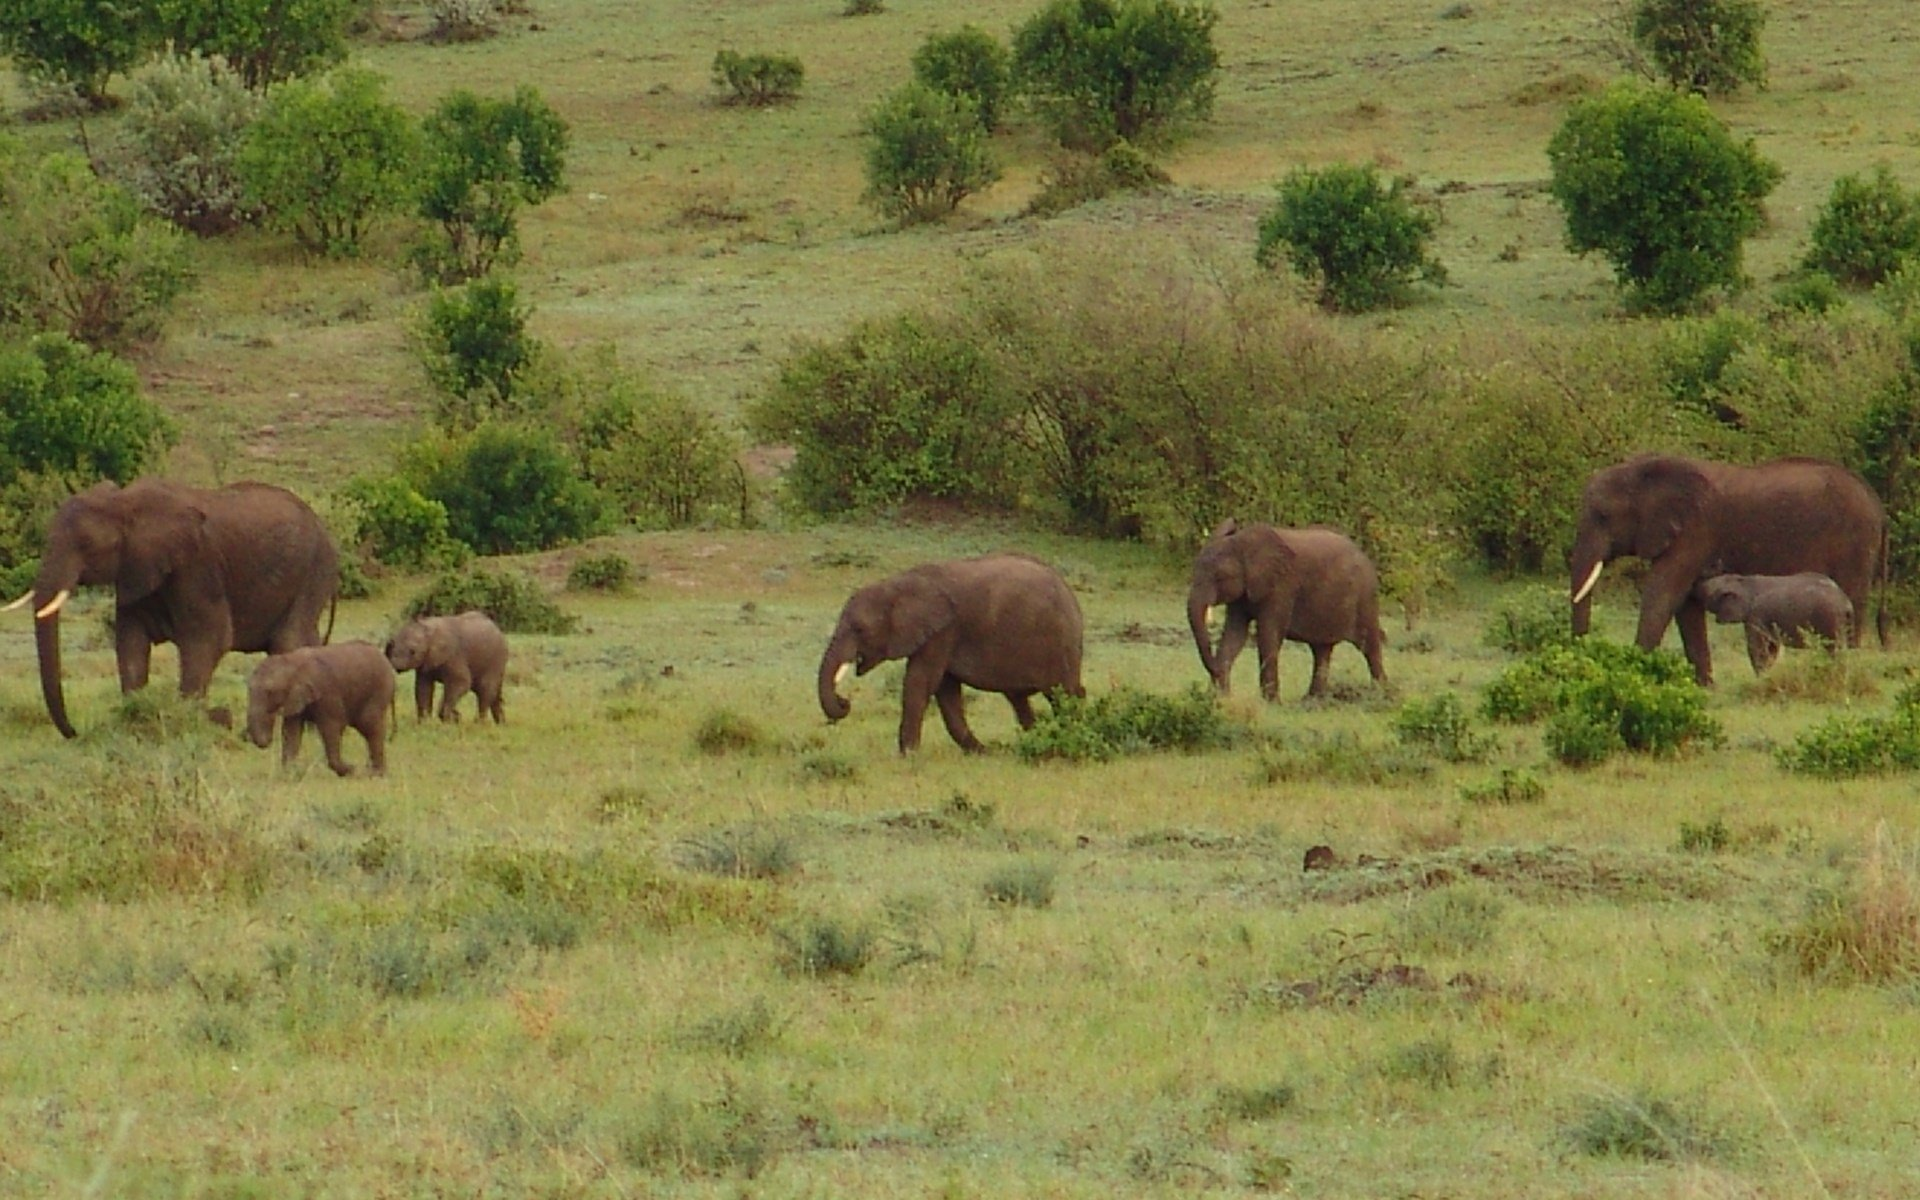 So much has already been said about Elephants, but when I came across these little-known facts, they fascinated me and so I have shared.